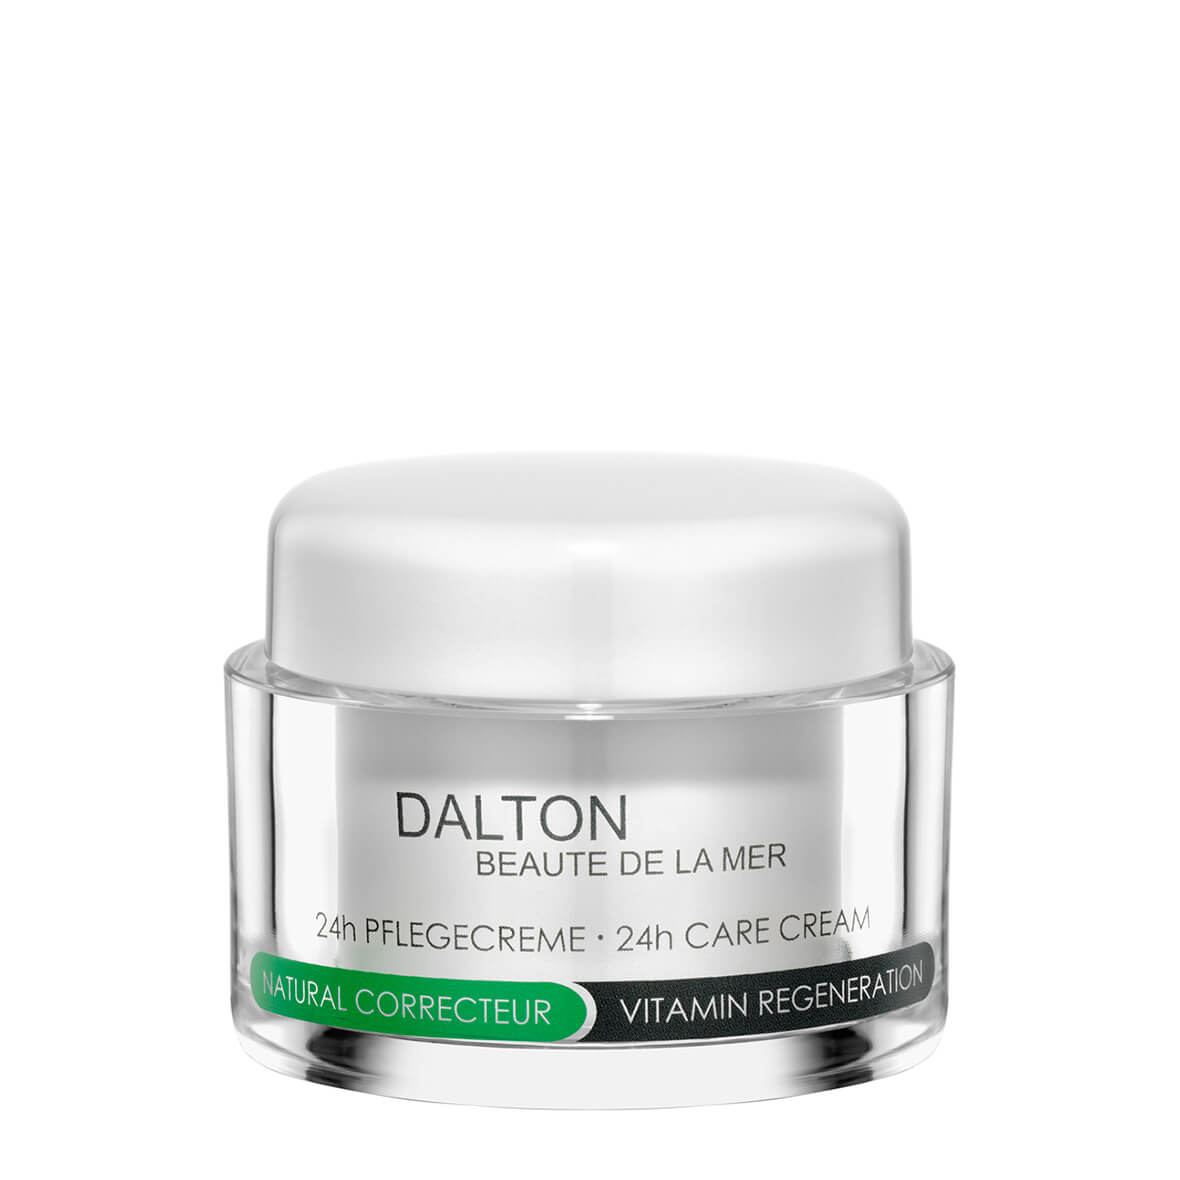 Natural Correcteur 24h Care Cream 50ml., crema de zi, Dalton Marine Cosmetics, Era Cosmetics